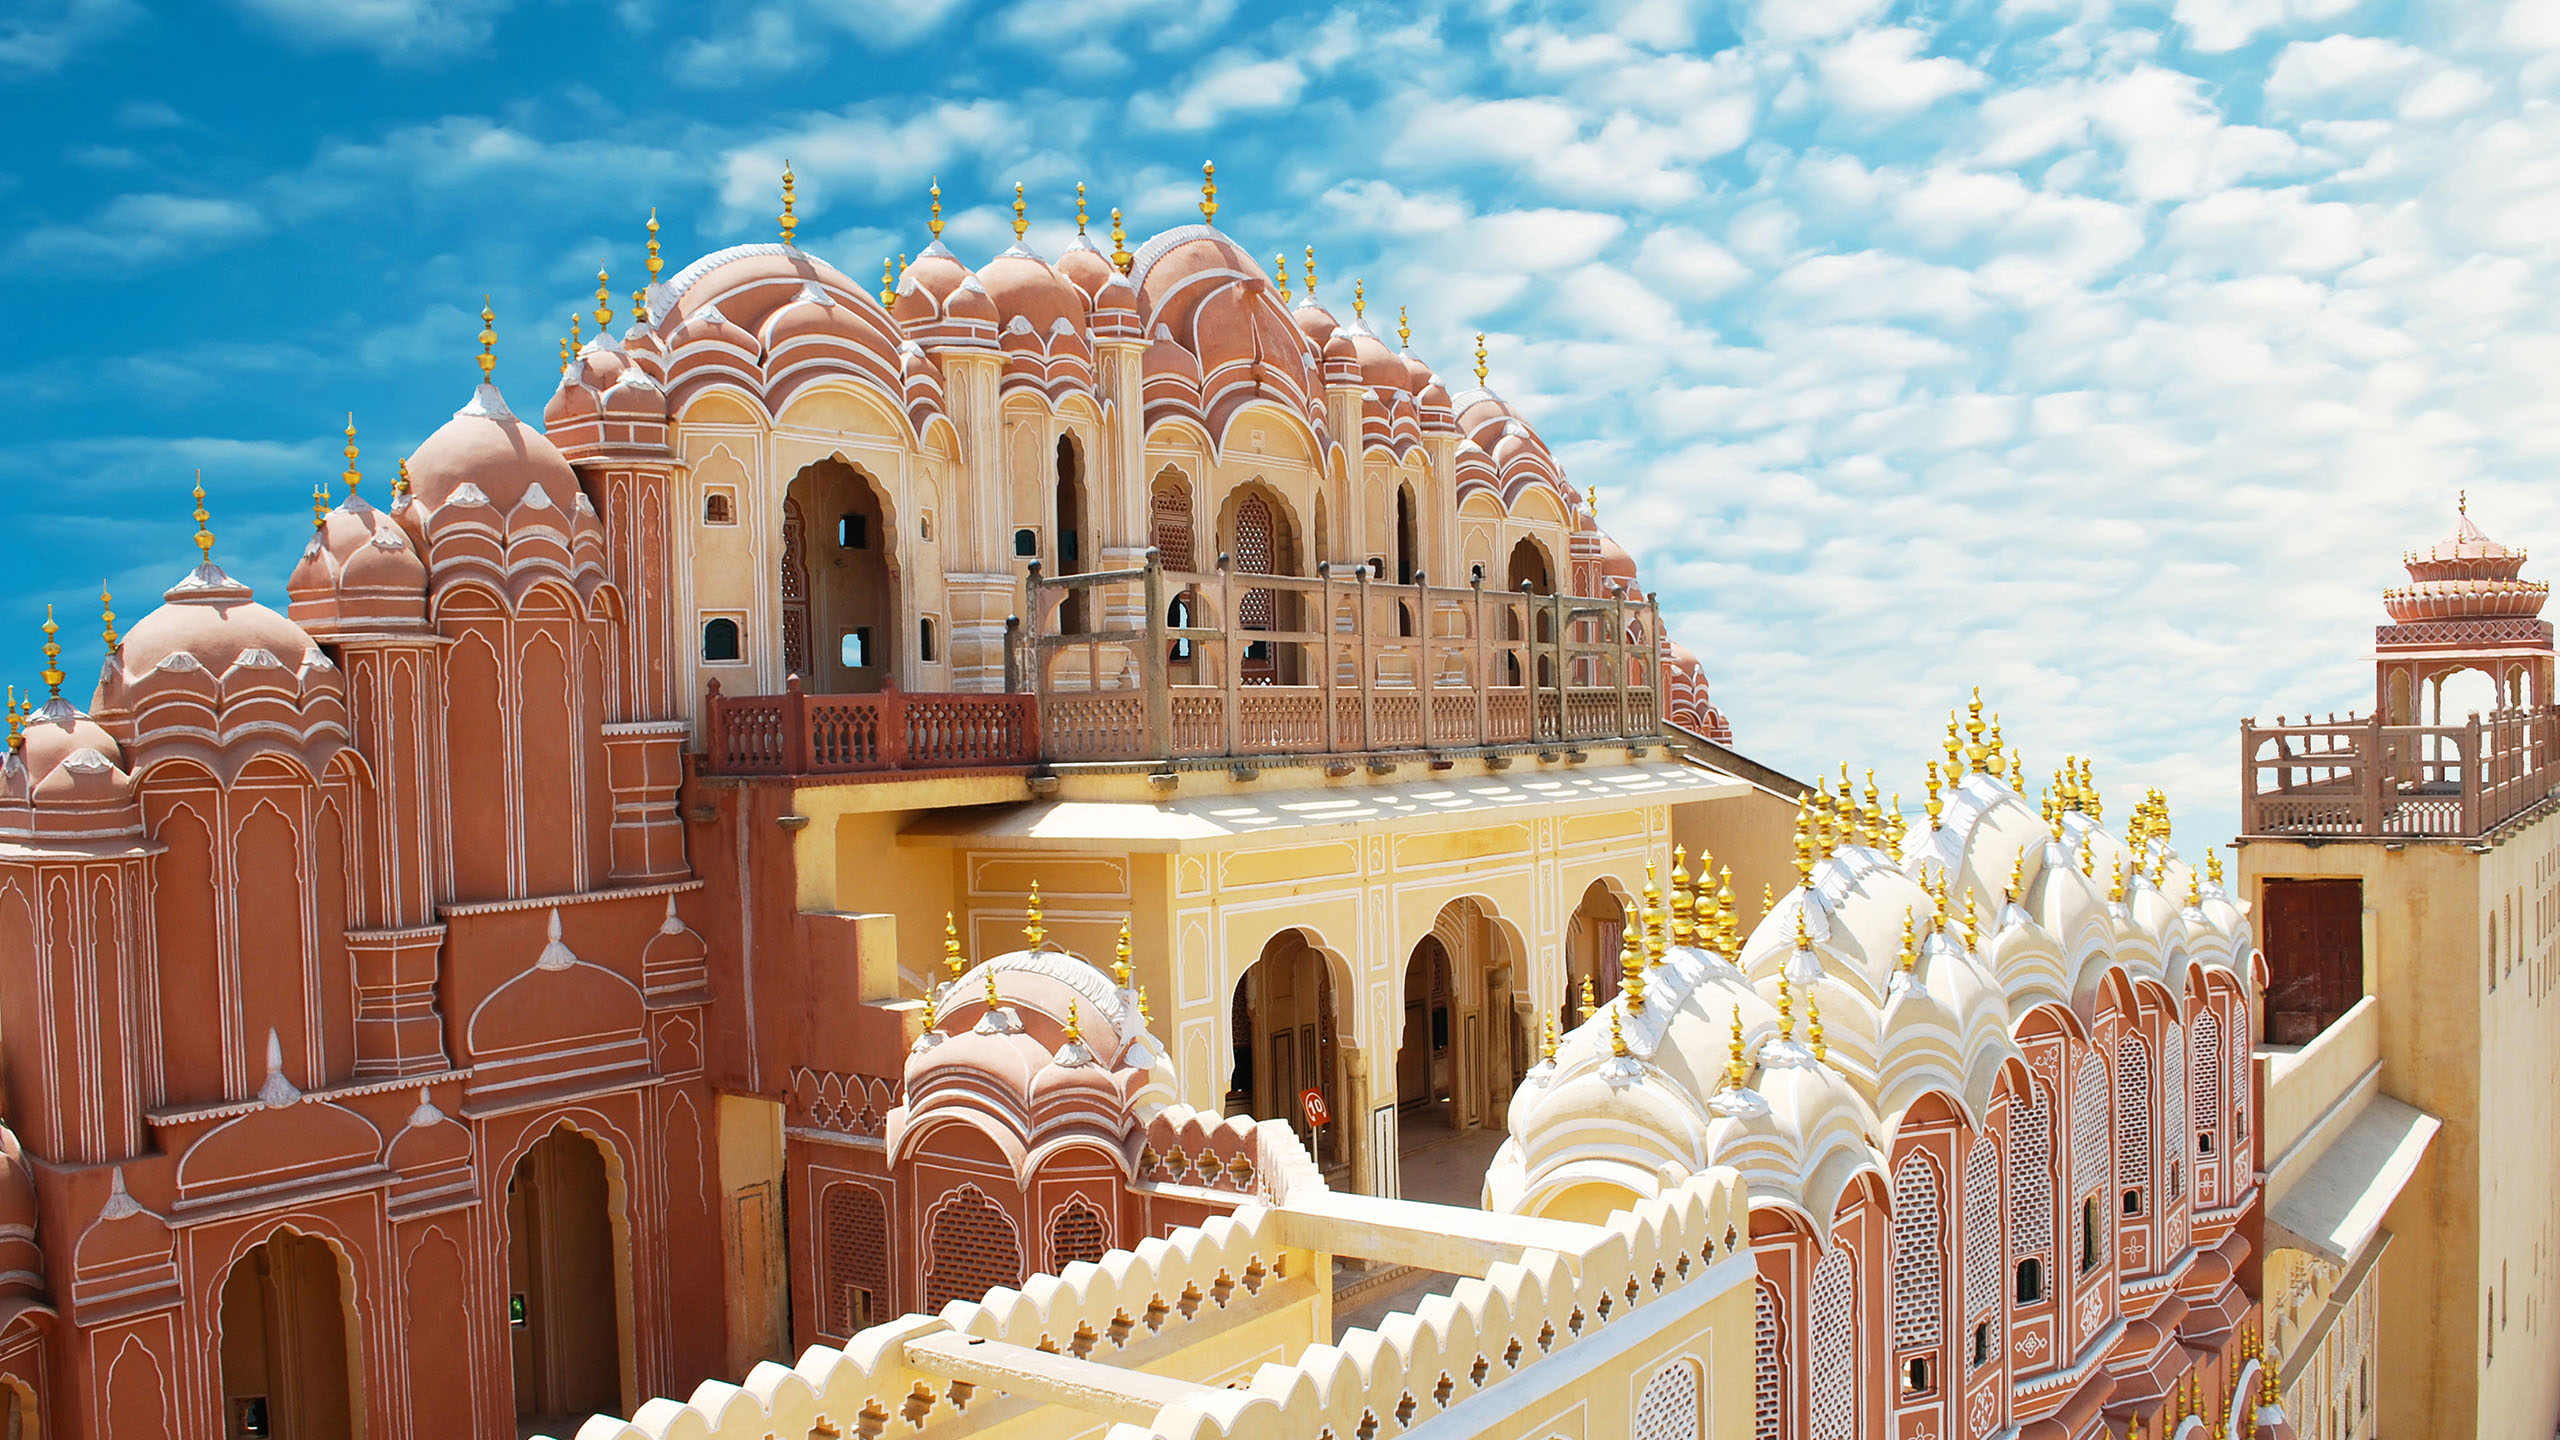 Divulge into the secrets of the Walled City of Jaipur